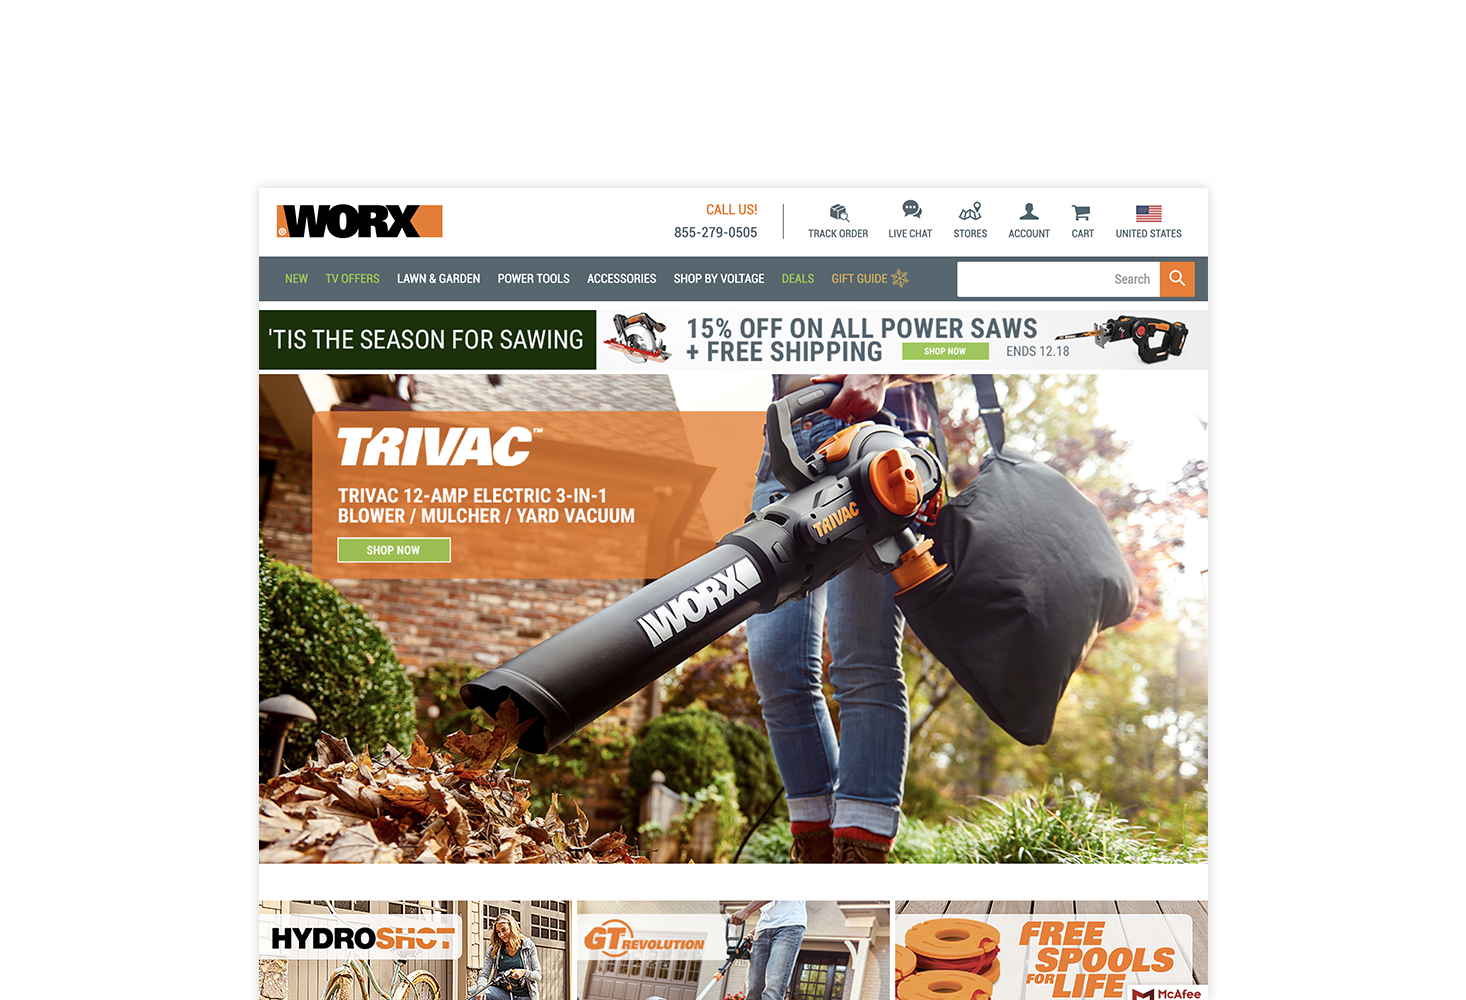 REQ WORX Tools Website Advertising